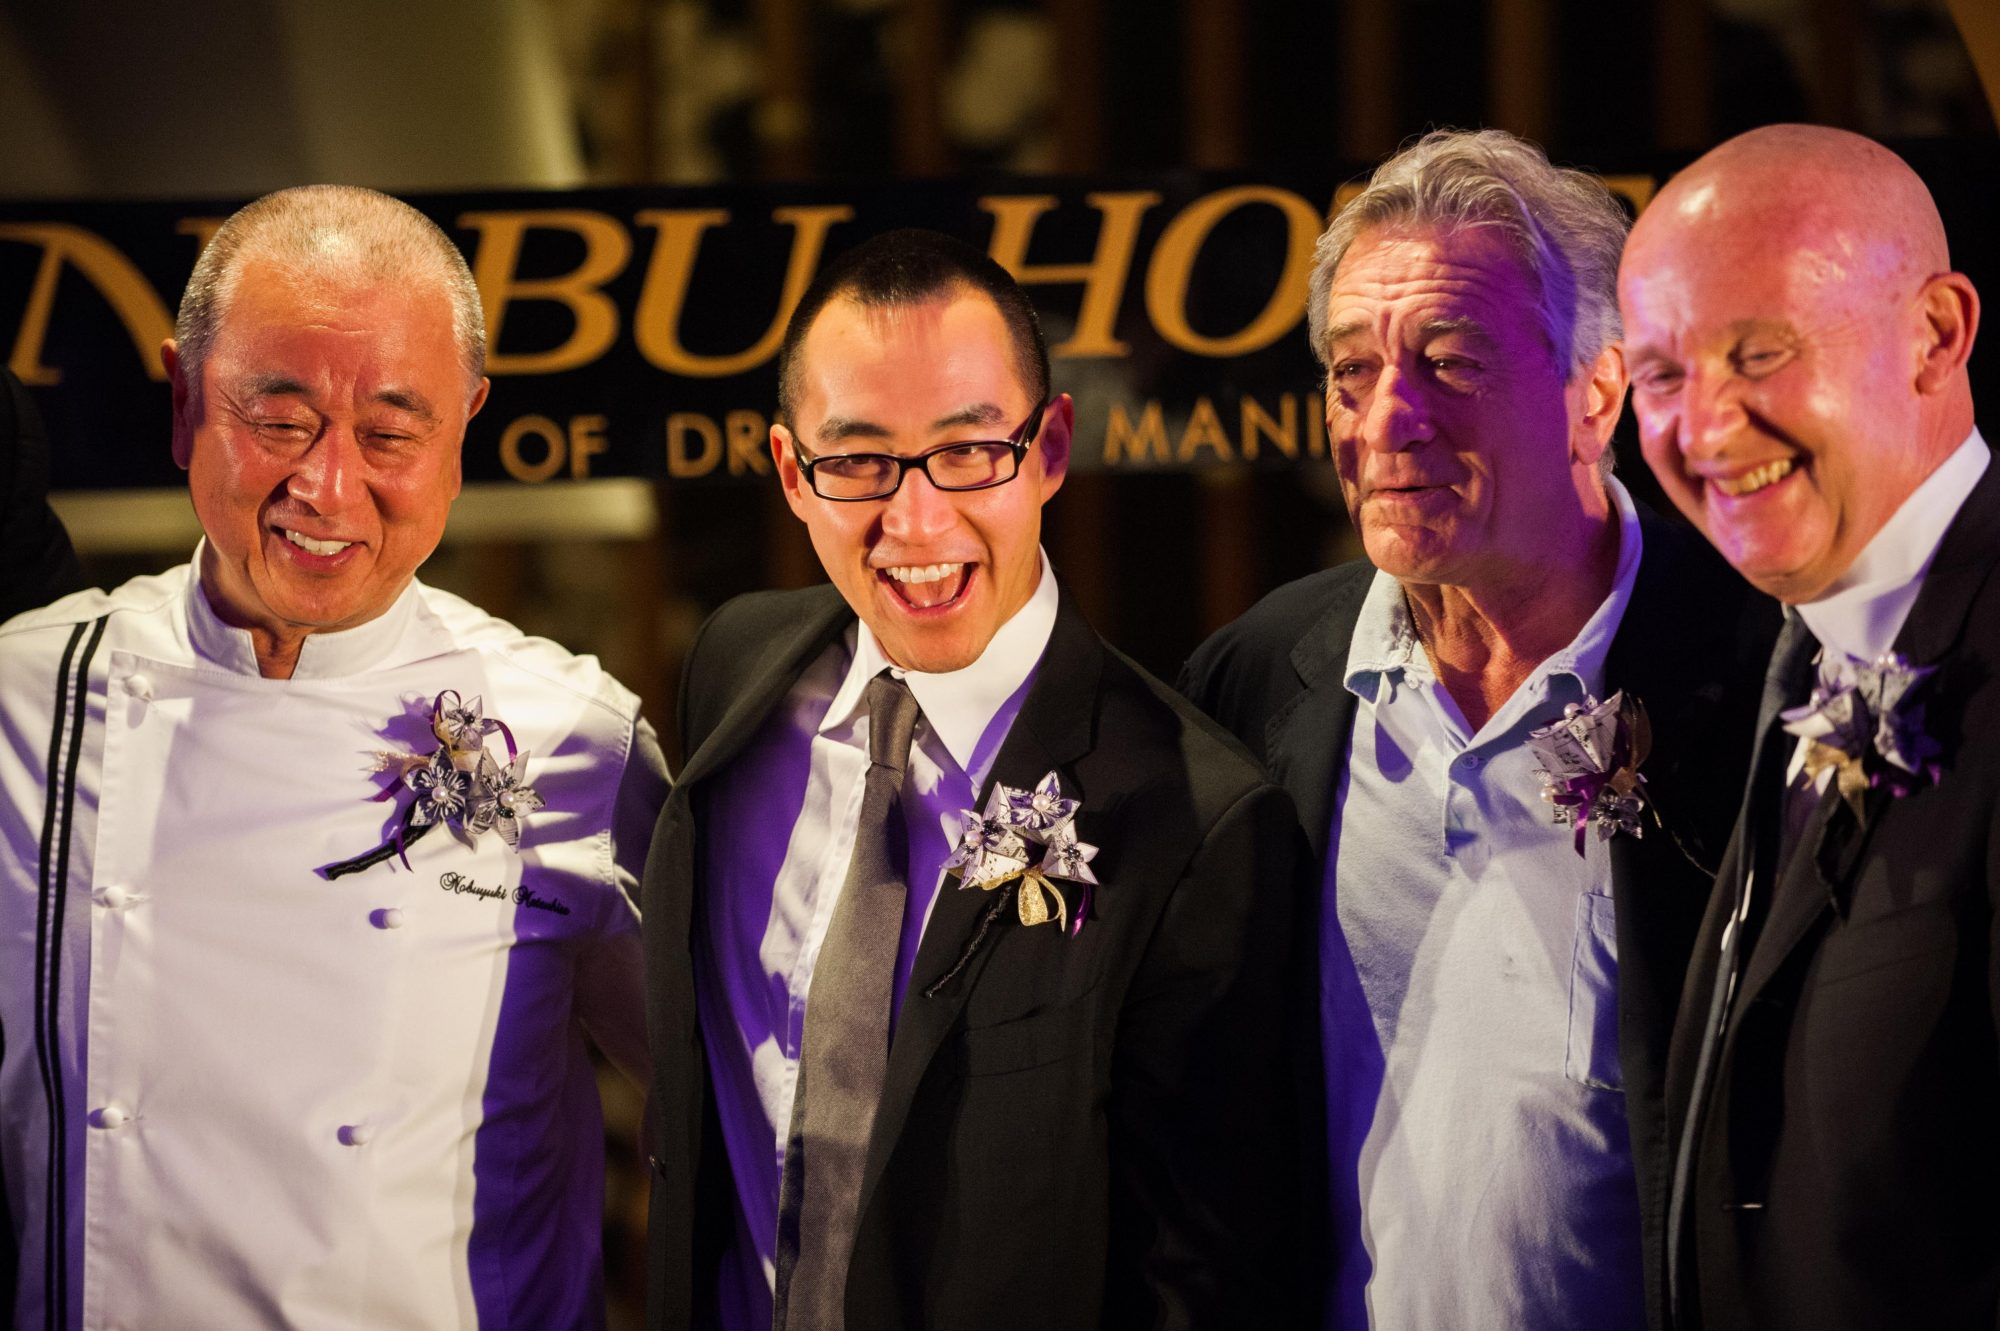 Robert De Niro's Nobu Empire Says It Will Surpass $1 Billion in Sales in 5 Years